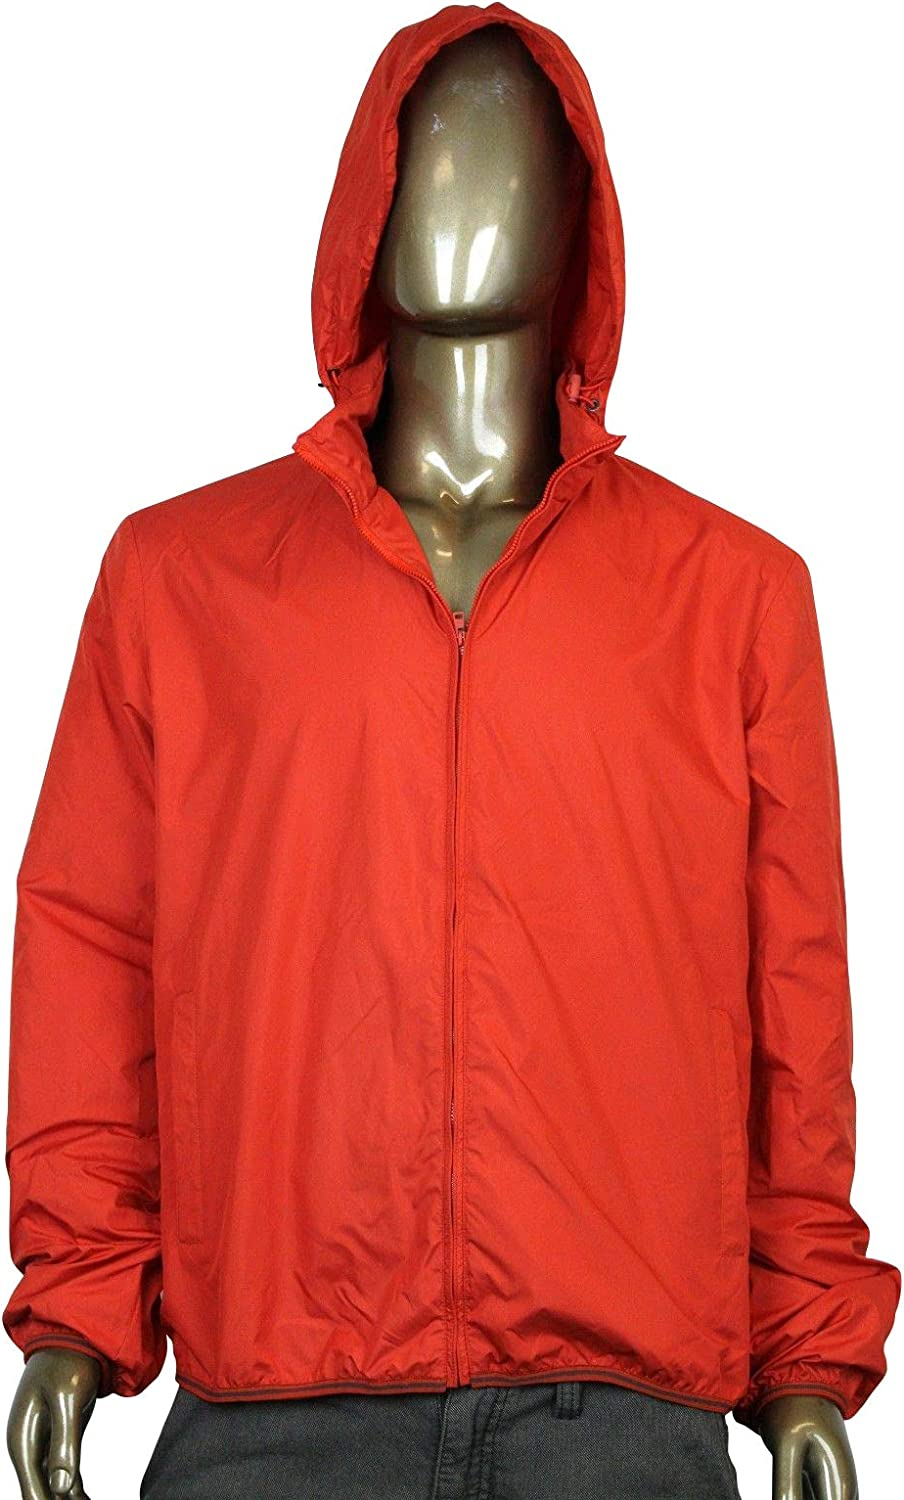 Gucci Techno Red Polyester Windbreaker Jacket 347509 7510 (G